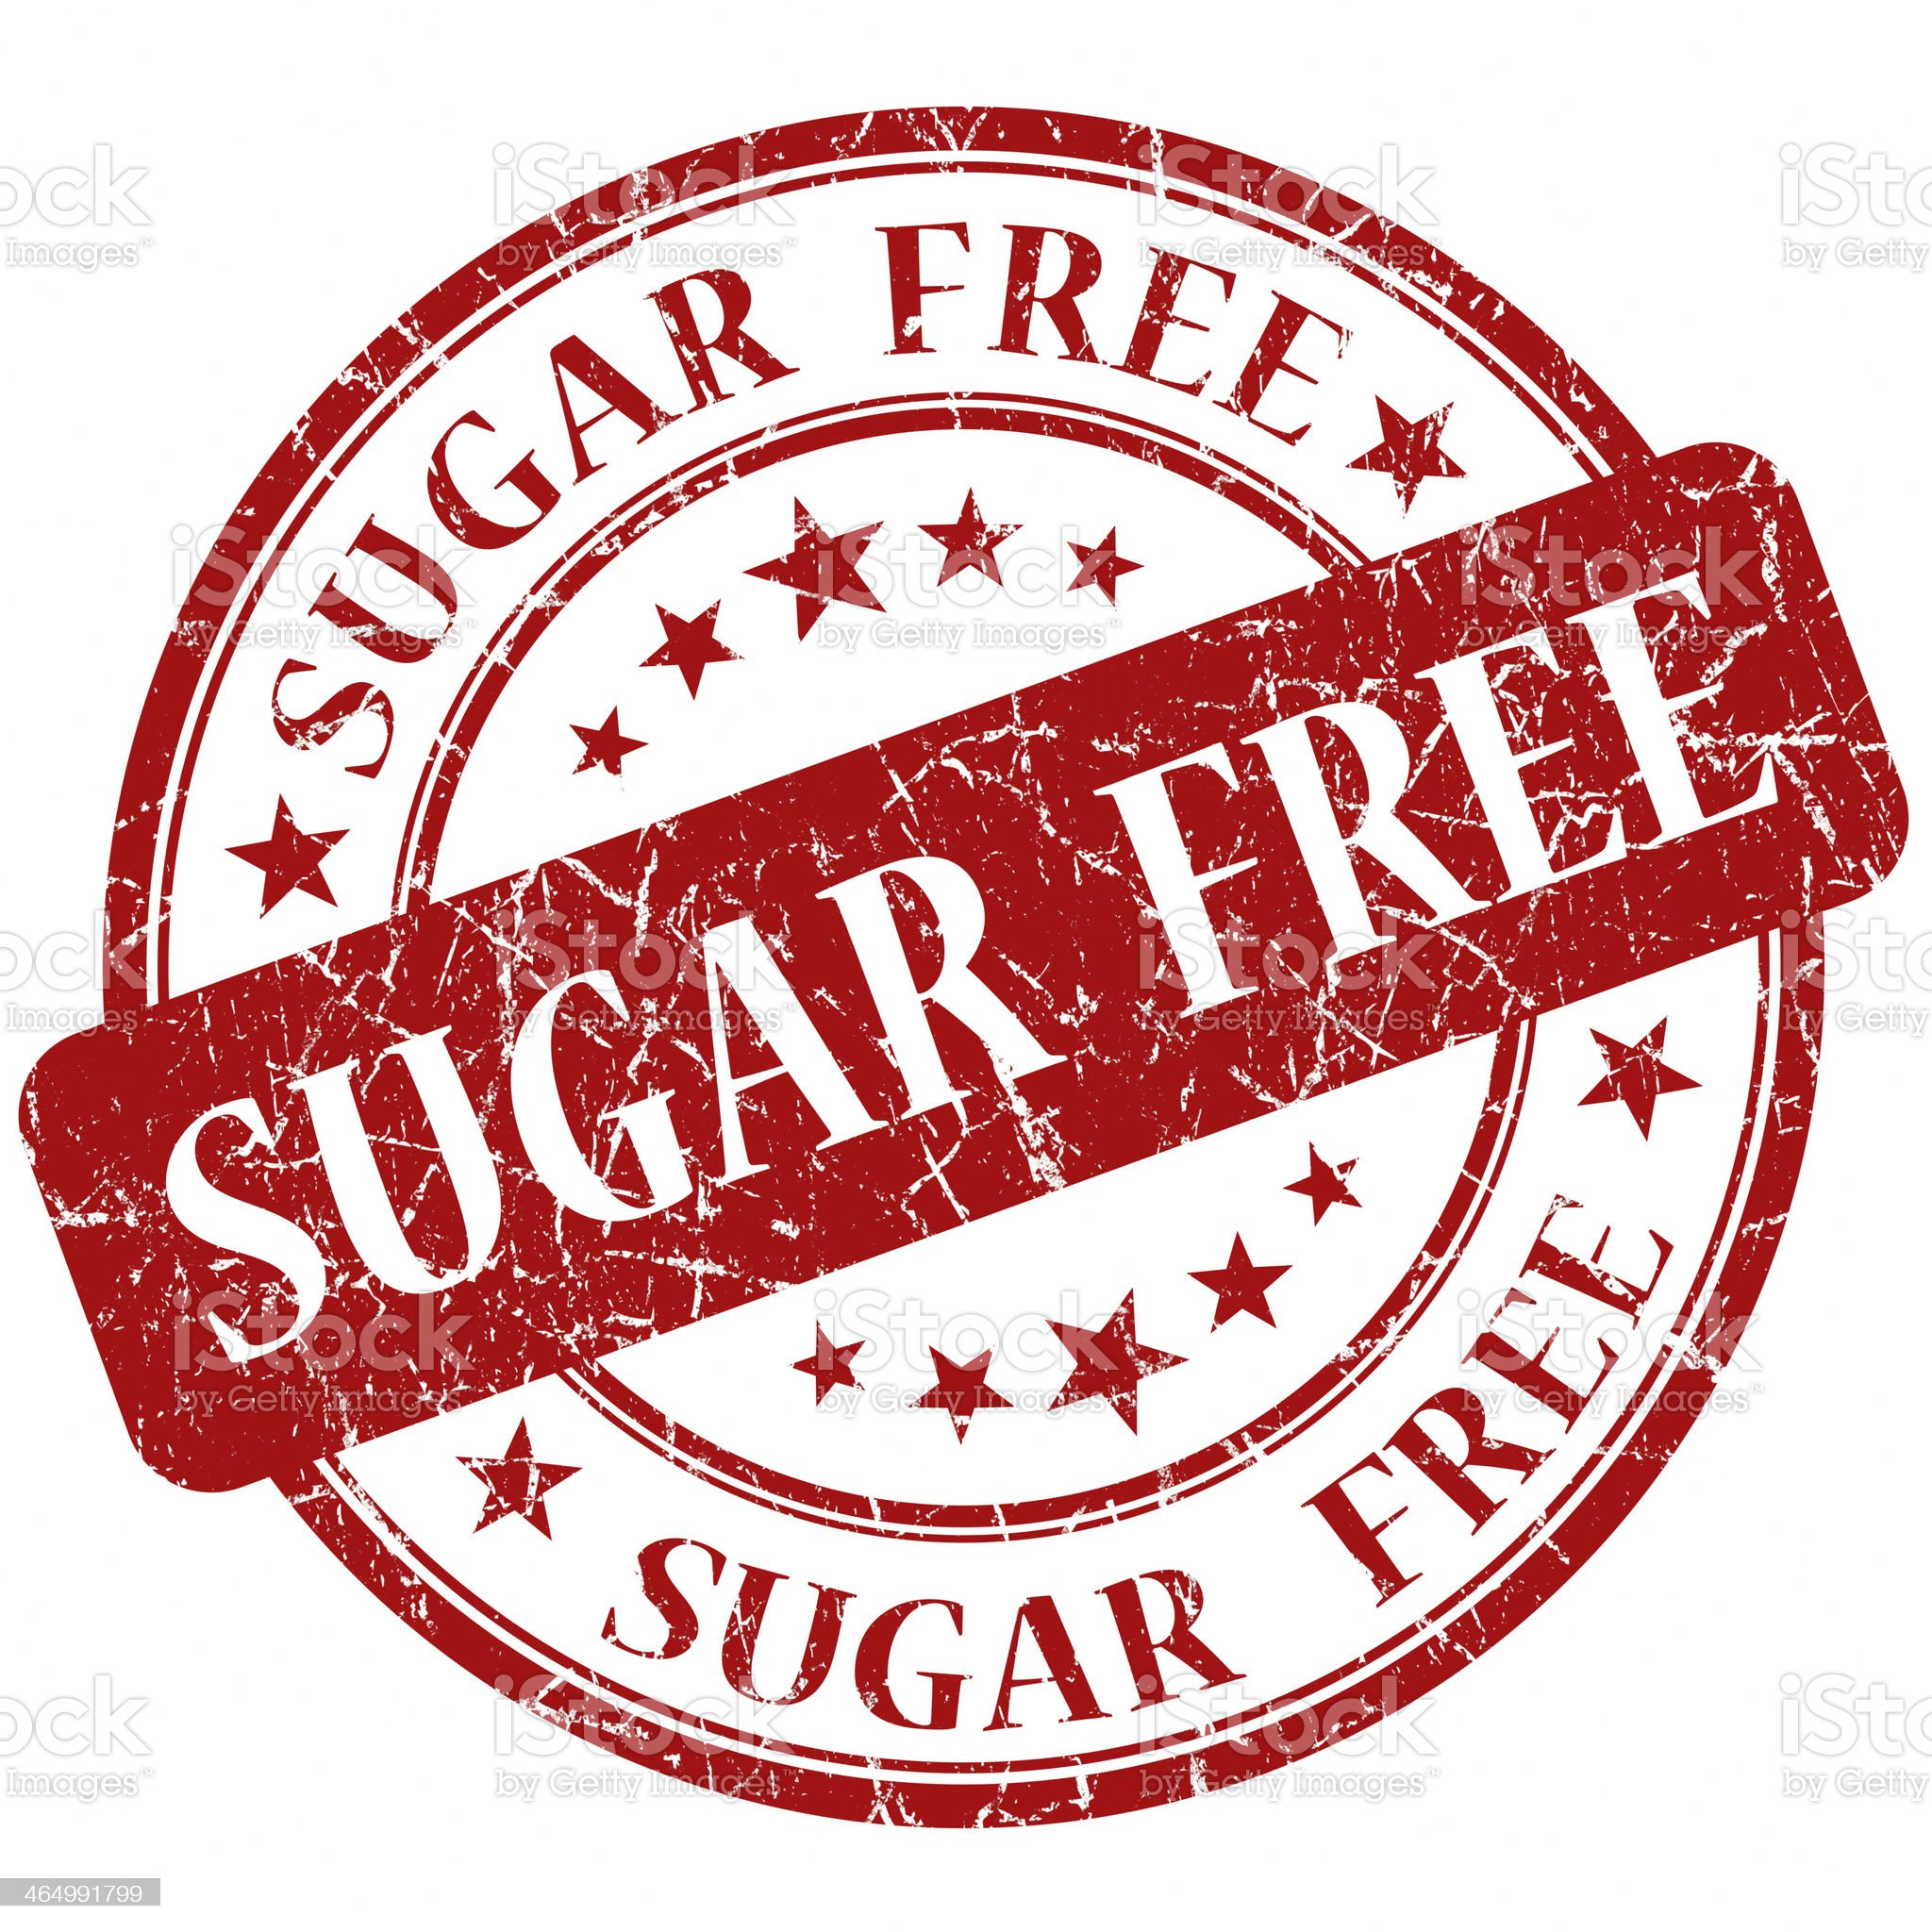 Sugar Free red stamp royalty-free stock vector art